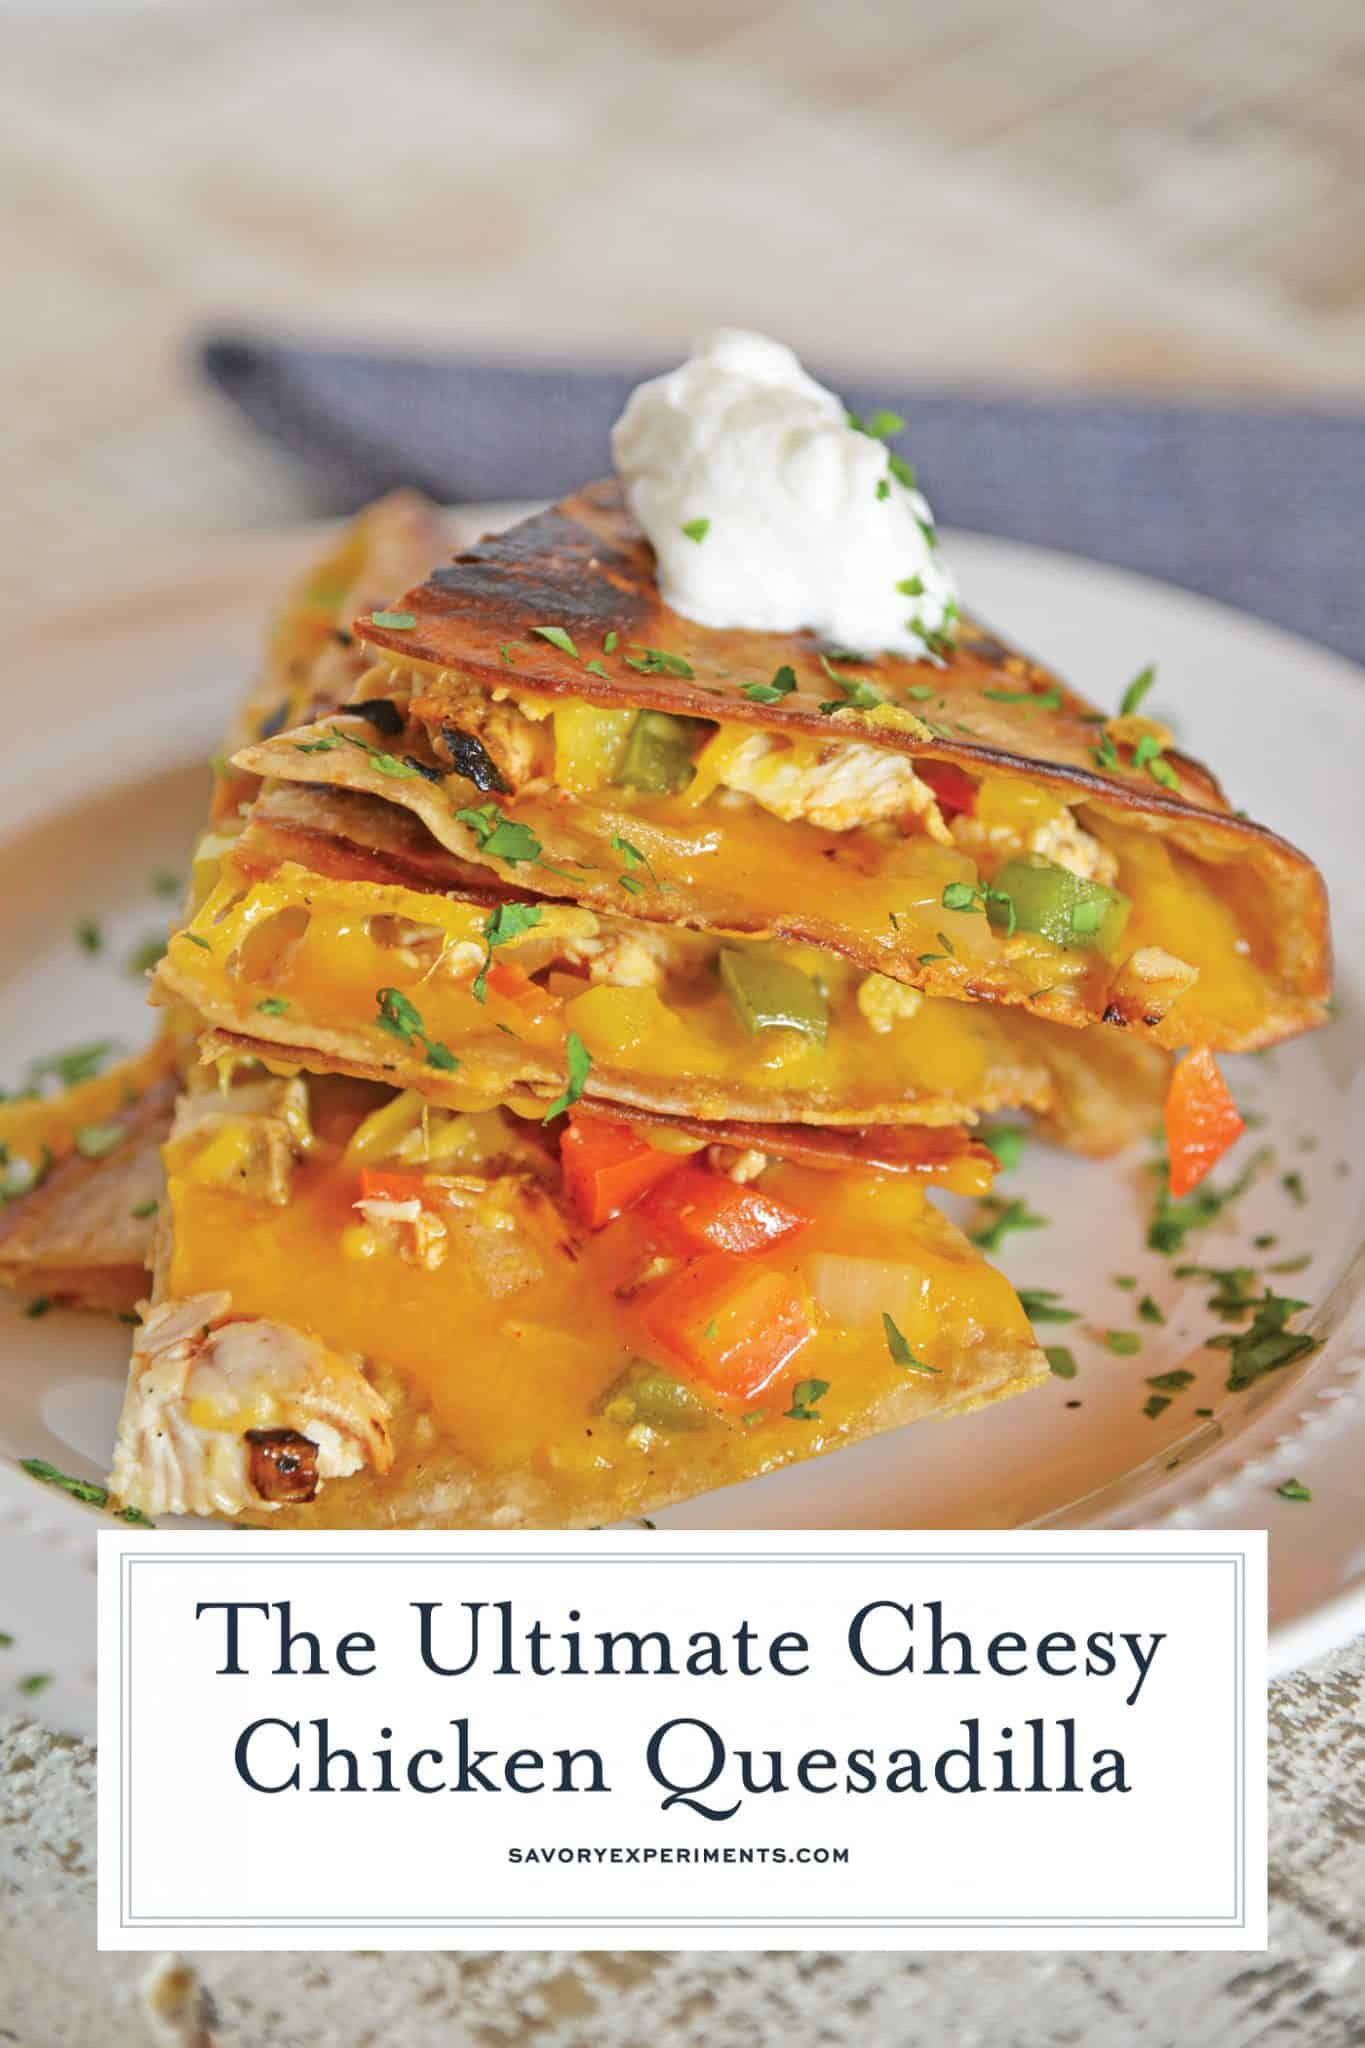 This Chicken Quesadillas Recipe is made with crispy tortillas, chopped vegetables and lots of cheese! This shows you how to make quesadillas the easy way! #chickenquesadillarecipe #howtomakechickenquesadillas www.savoryexperiments.com